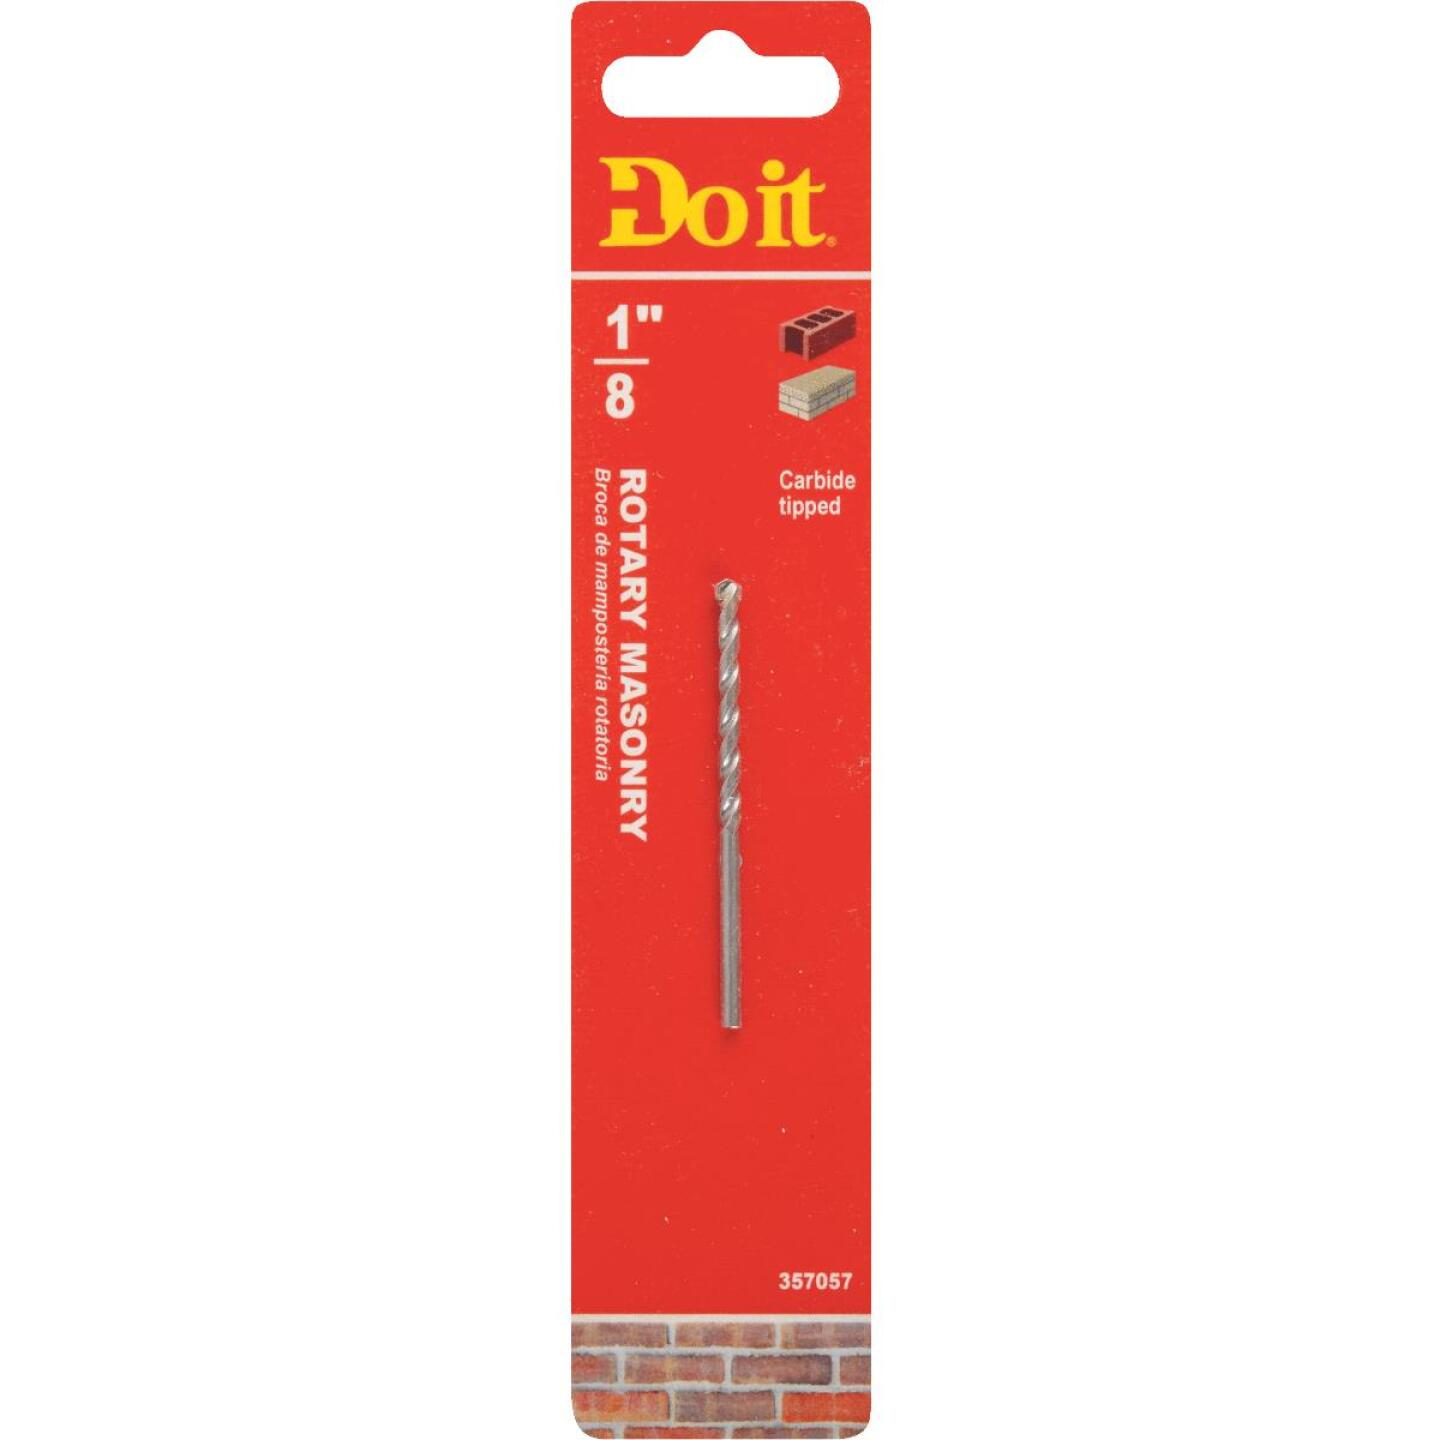 Do it 1/8 In. x 2-1/2 In. Rotary Masonry Drill Bit Image 1